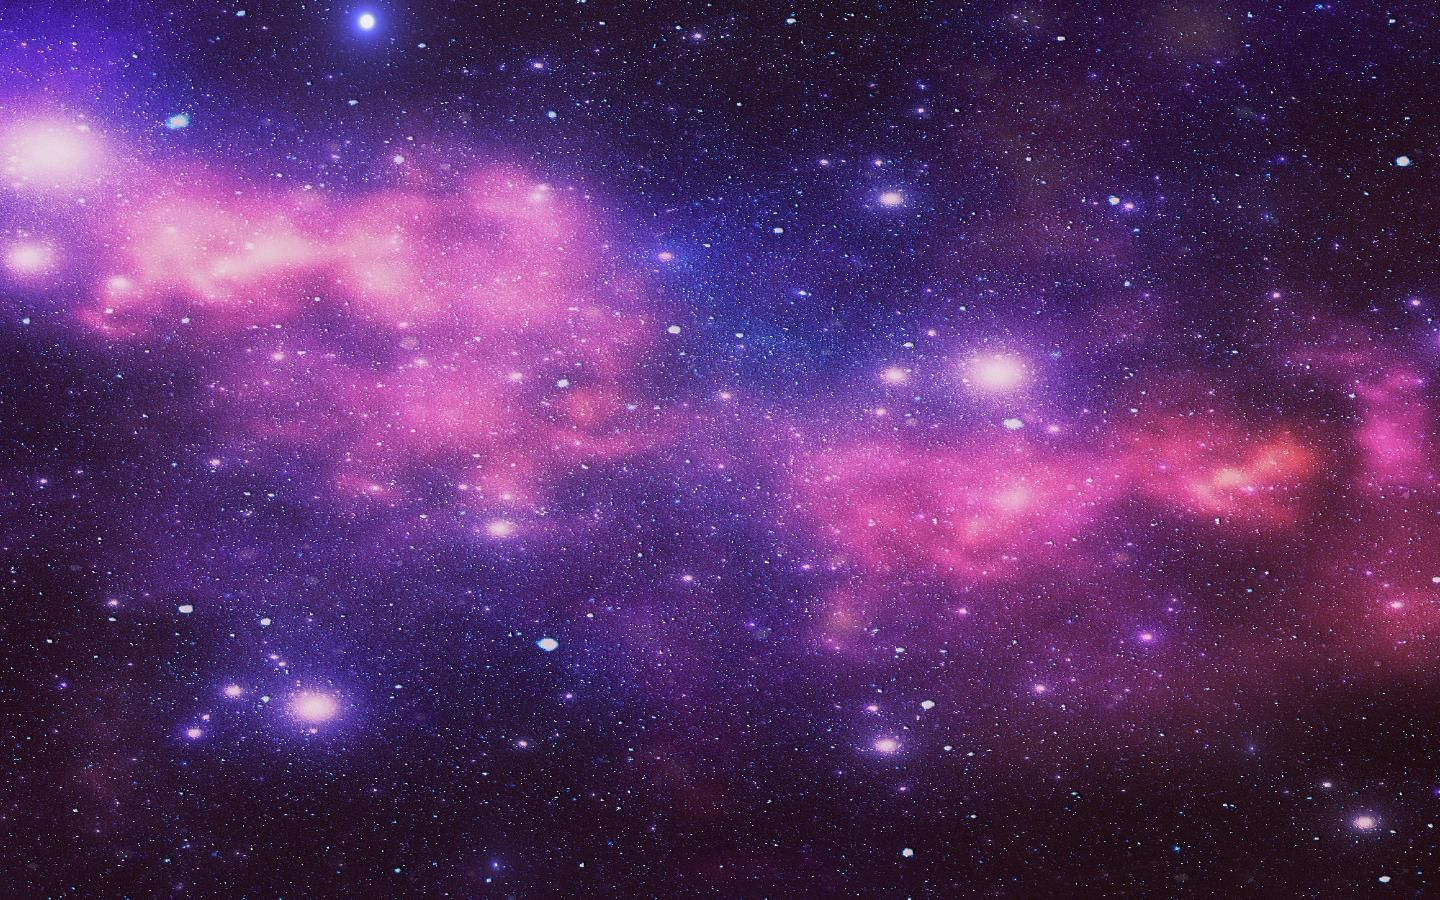 Free Download Purple Galaxy Wallpapers Galaxy In 2019 1440x900 For Your Desktop Mobile Tablet Explore 27 Samsung Tablet Background Samsung Tablet Wallpaper Samsung Tablet Background Samsung Galaxy Tablet Wallpaper